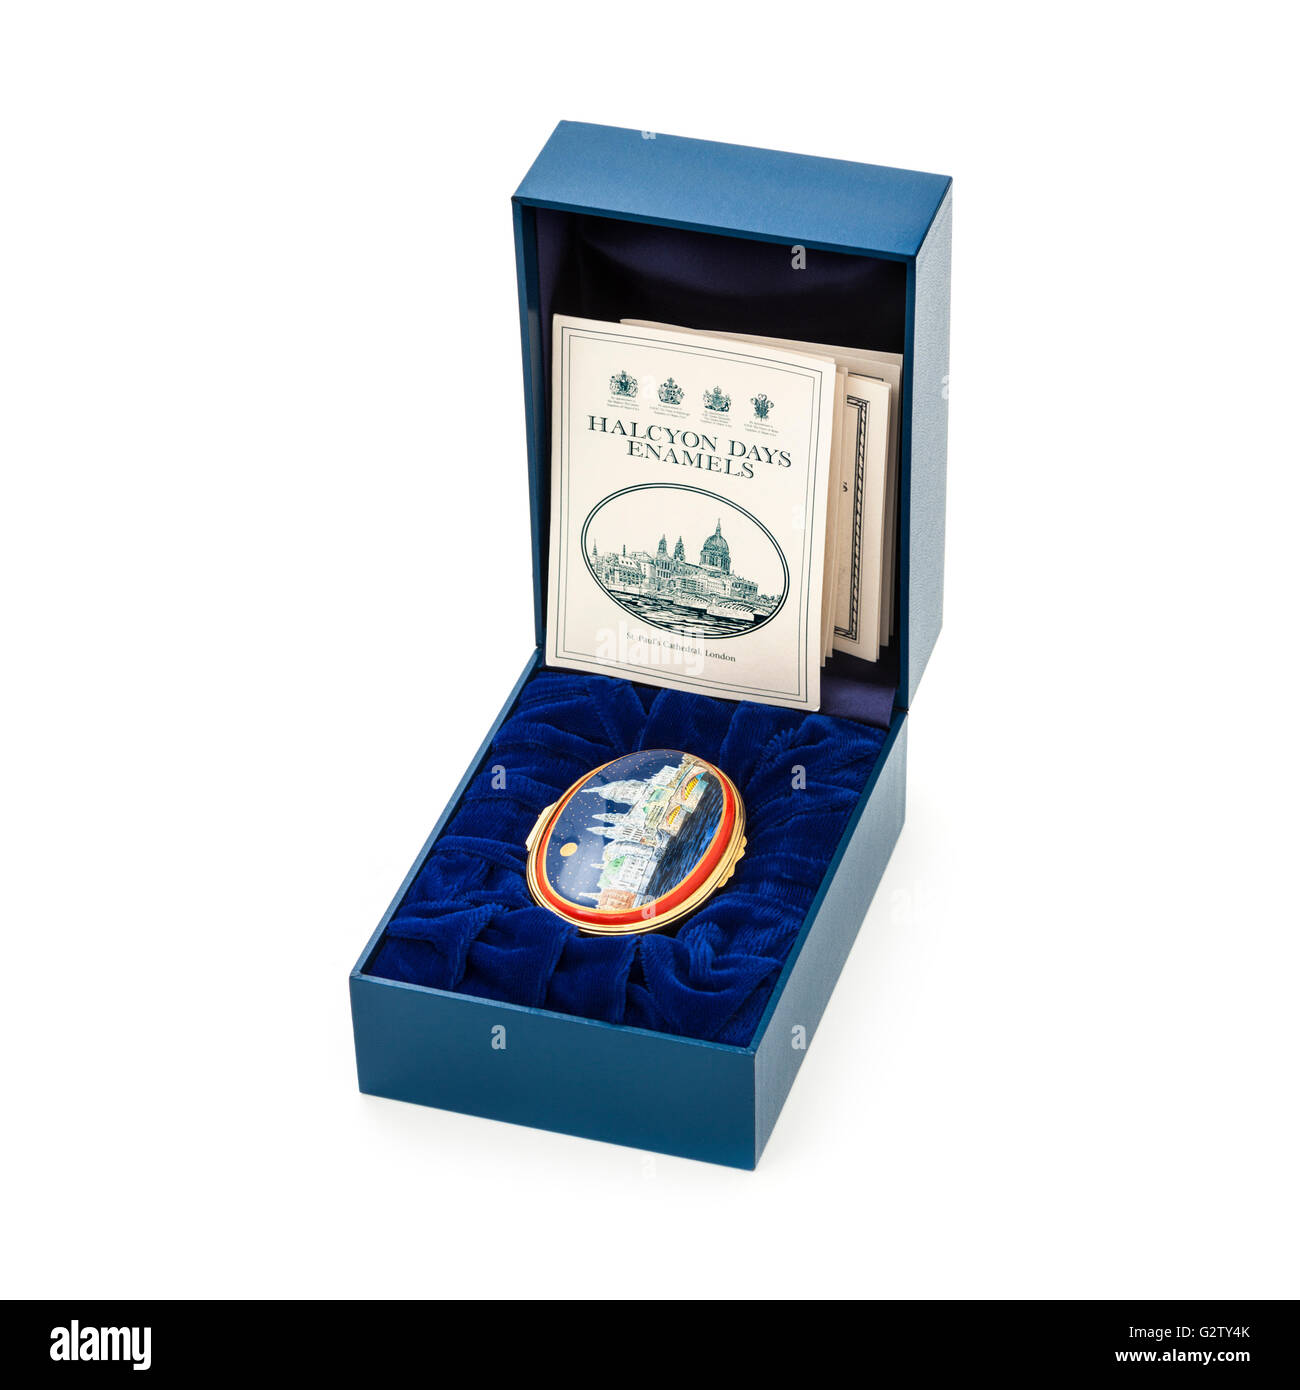 Halcyon Days Enamels music box in original packaging. Plays 'These Foolish Things' by Eric Maschwitz. - Stock Image